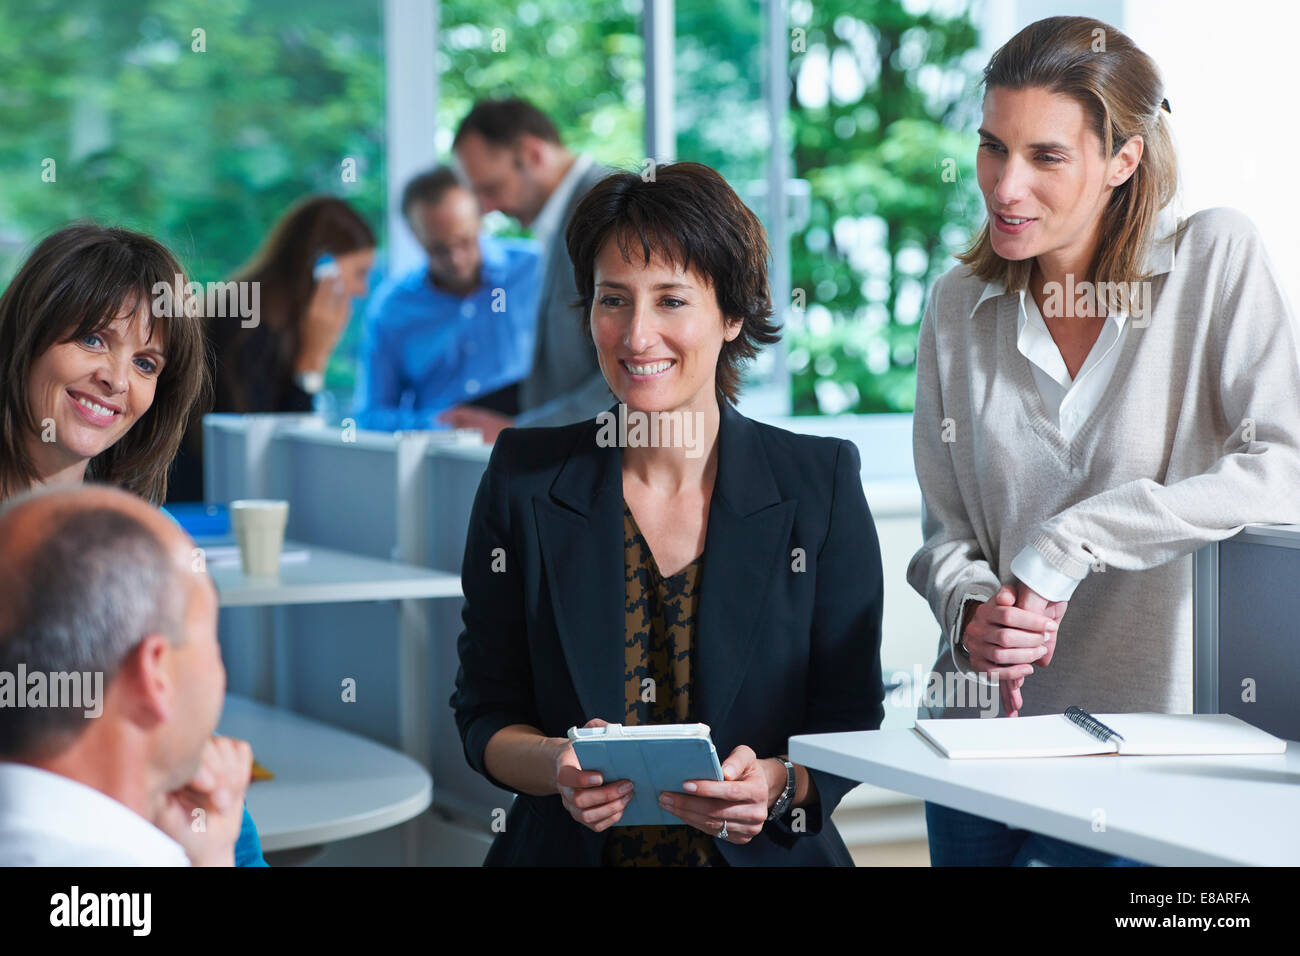 Business colleagues having informal meeting in office - Stock Image